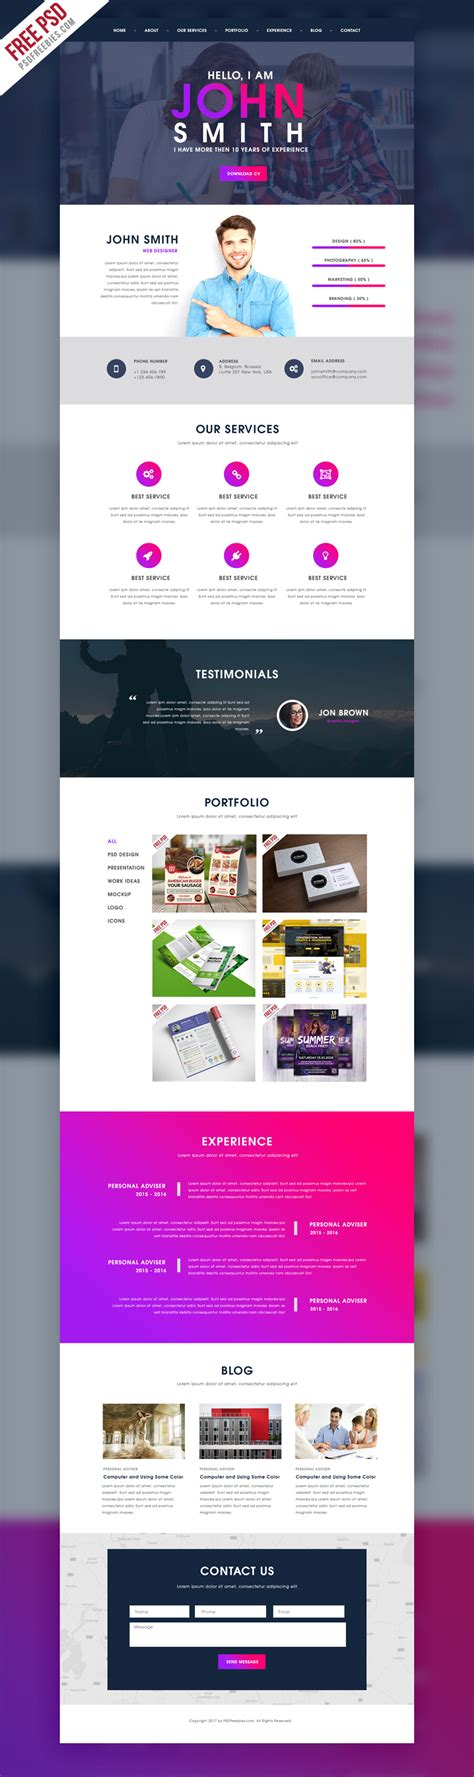 Creative One Page Portfolio Website Template Free Psd Psdfreebies Com Portfolio Web Page Template